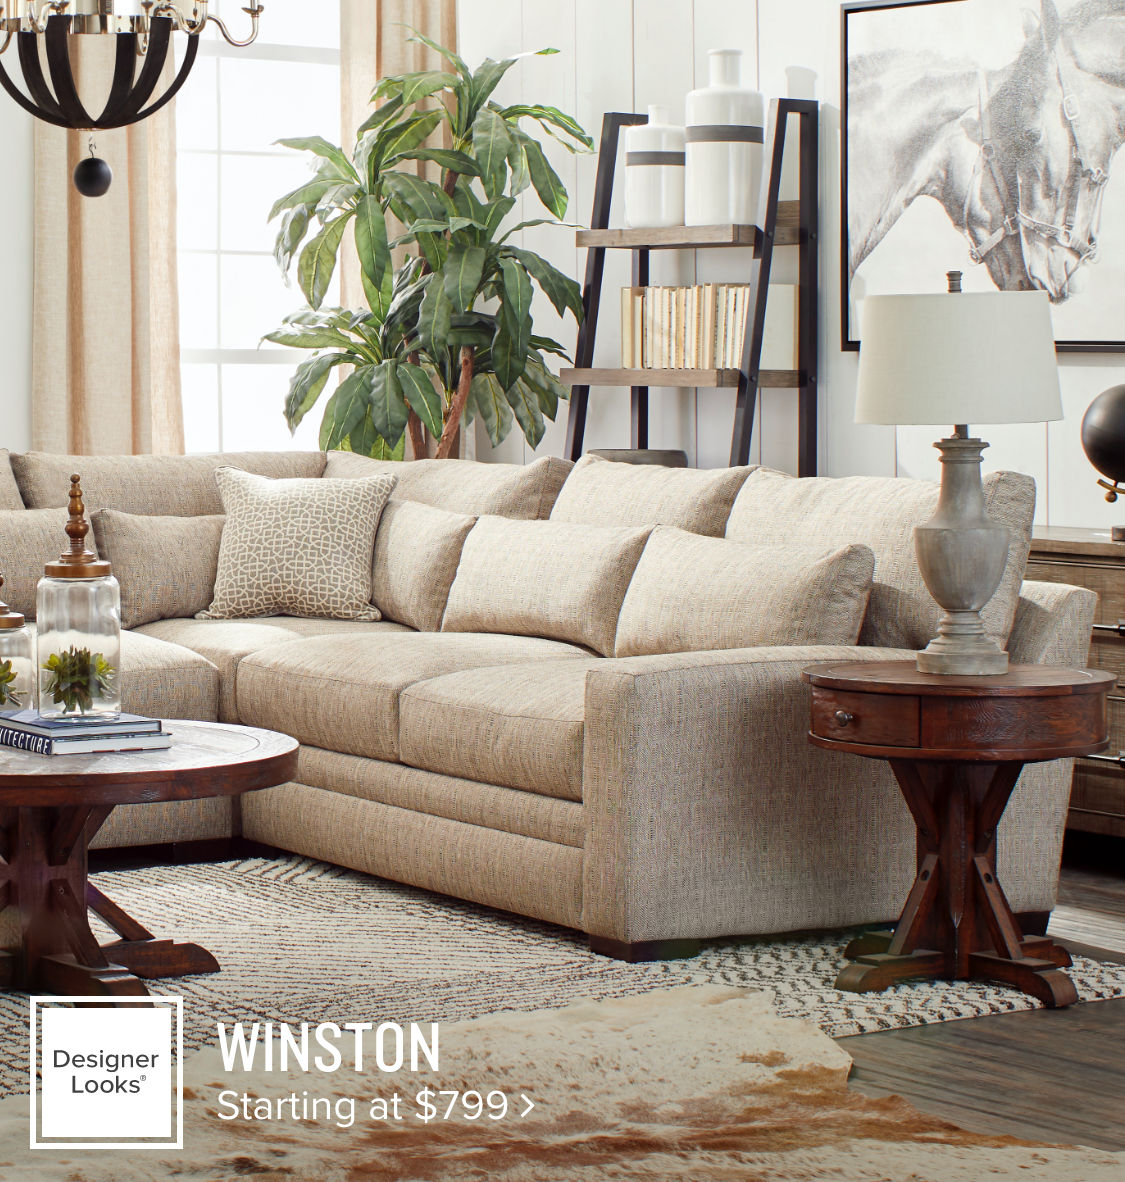 Winston 3-Piece Sectional Starting at $799